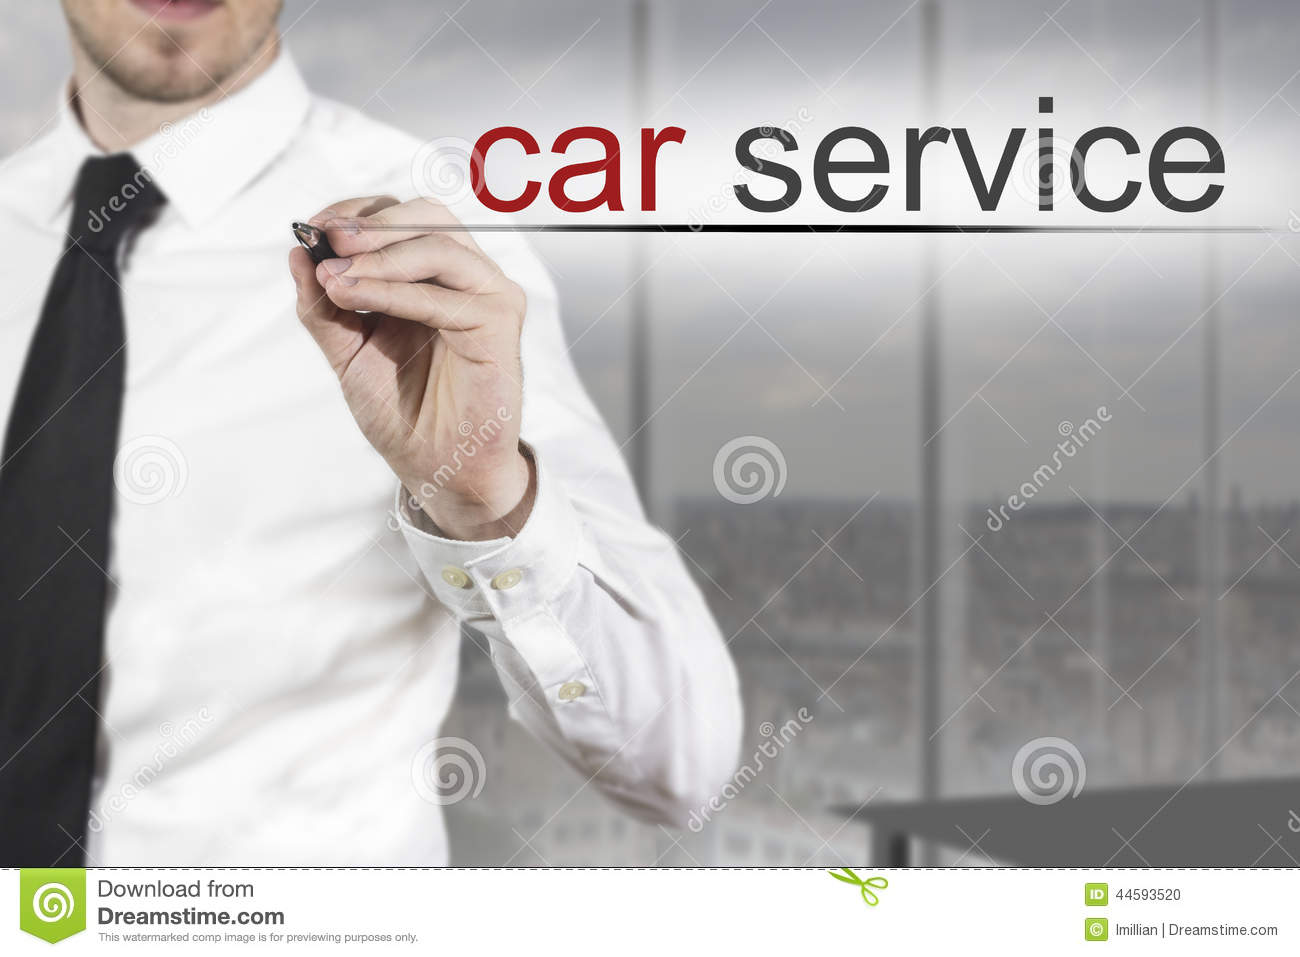 landslide limo service essay Free essays from bartleby | employment law introduction to what extent   bradley stonefield the founder of landslide limousines in austin, texas  the  bradley stonefield limousine service company formal recruitment process  begins.